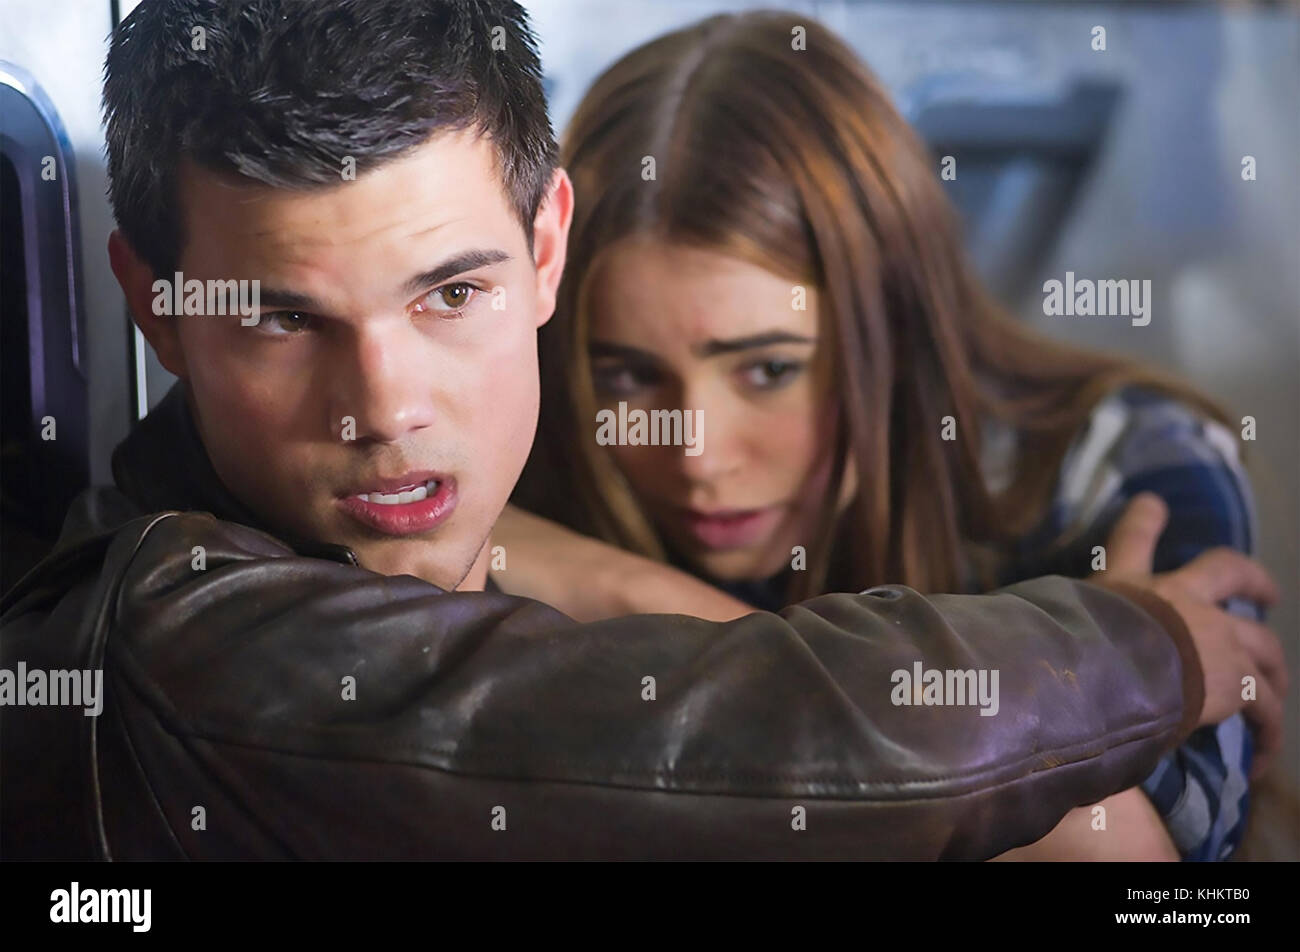 ABDUCTION 2011 Lionsgate film with Lily Collins and Taylor Lautner - Stock Image